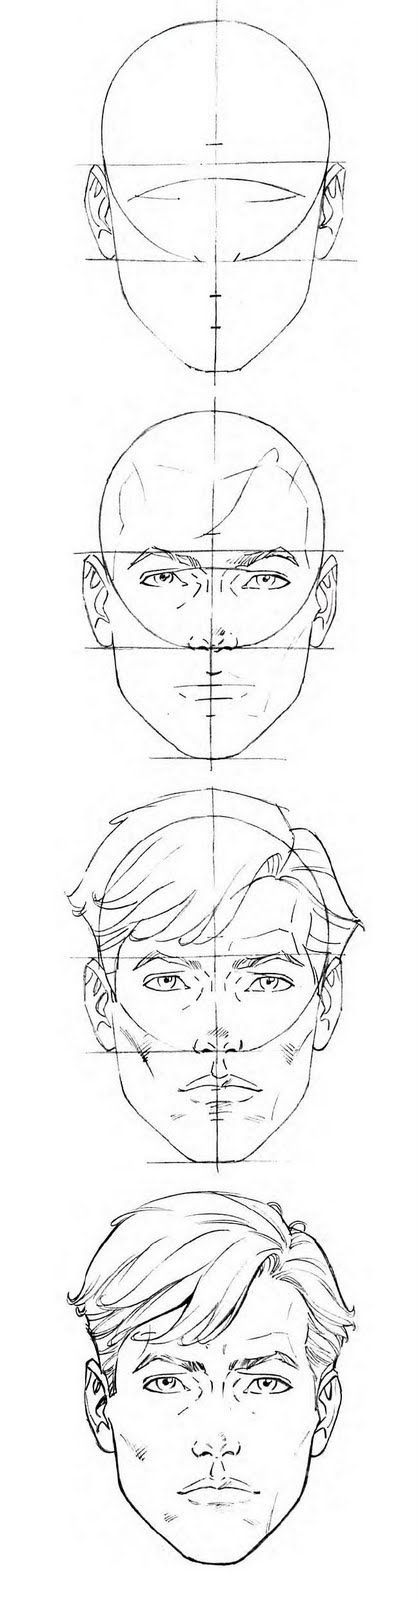 How to draw a male head. Art blog : artisinspiration   photos   poses   drawing tutorials   wallpapers   amazing art  